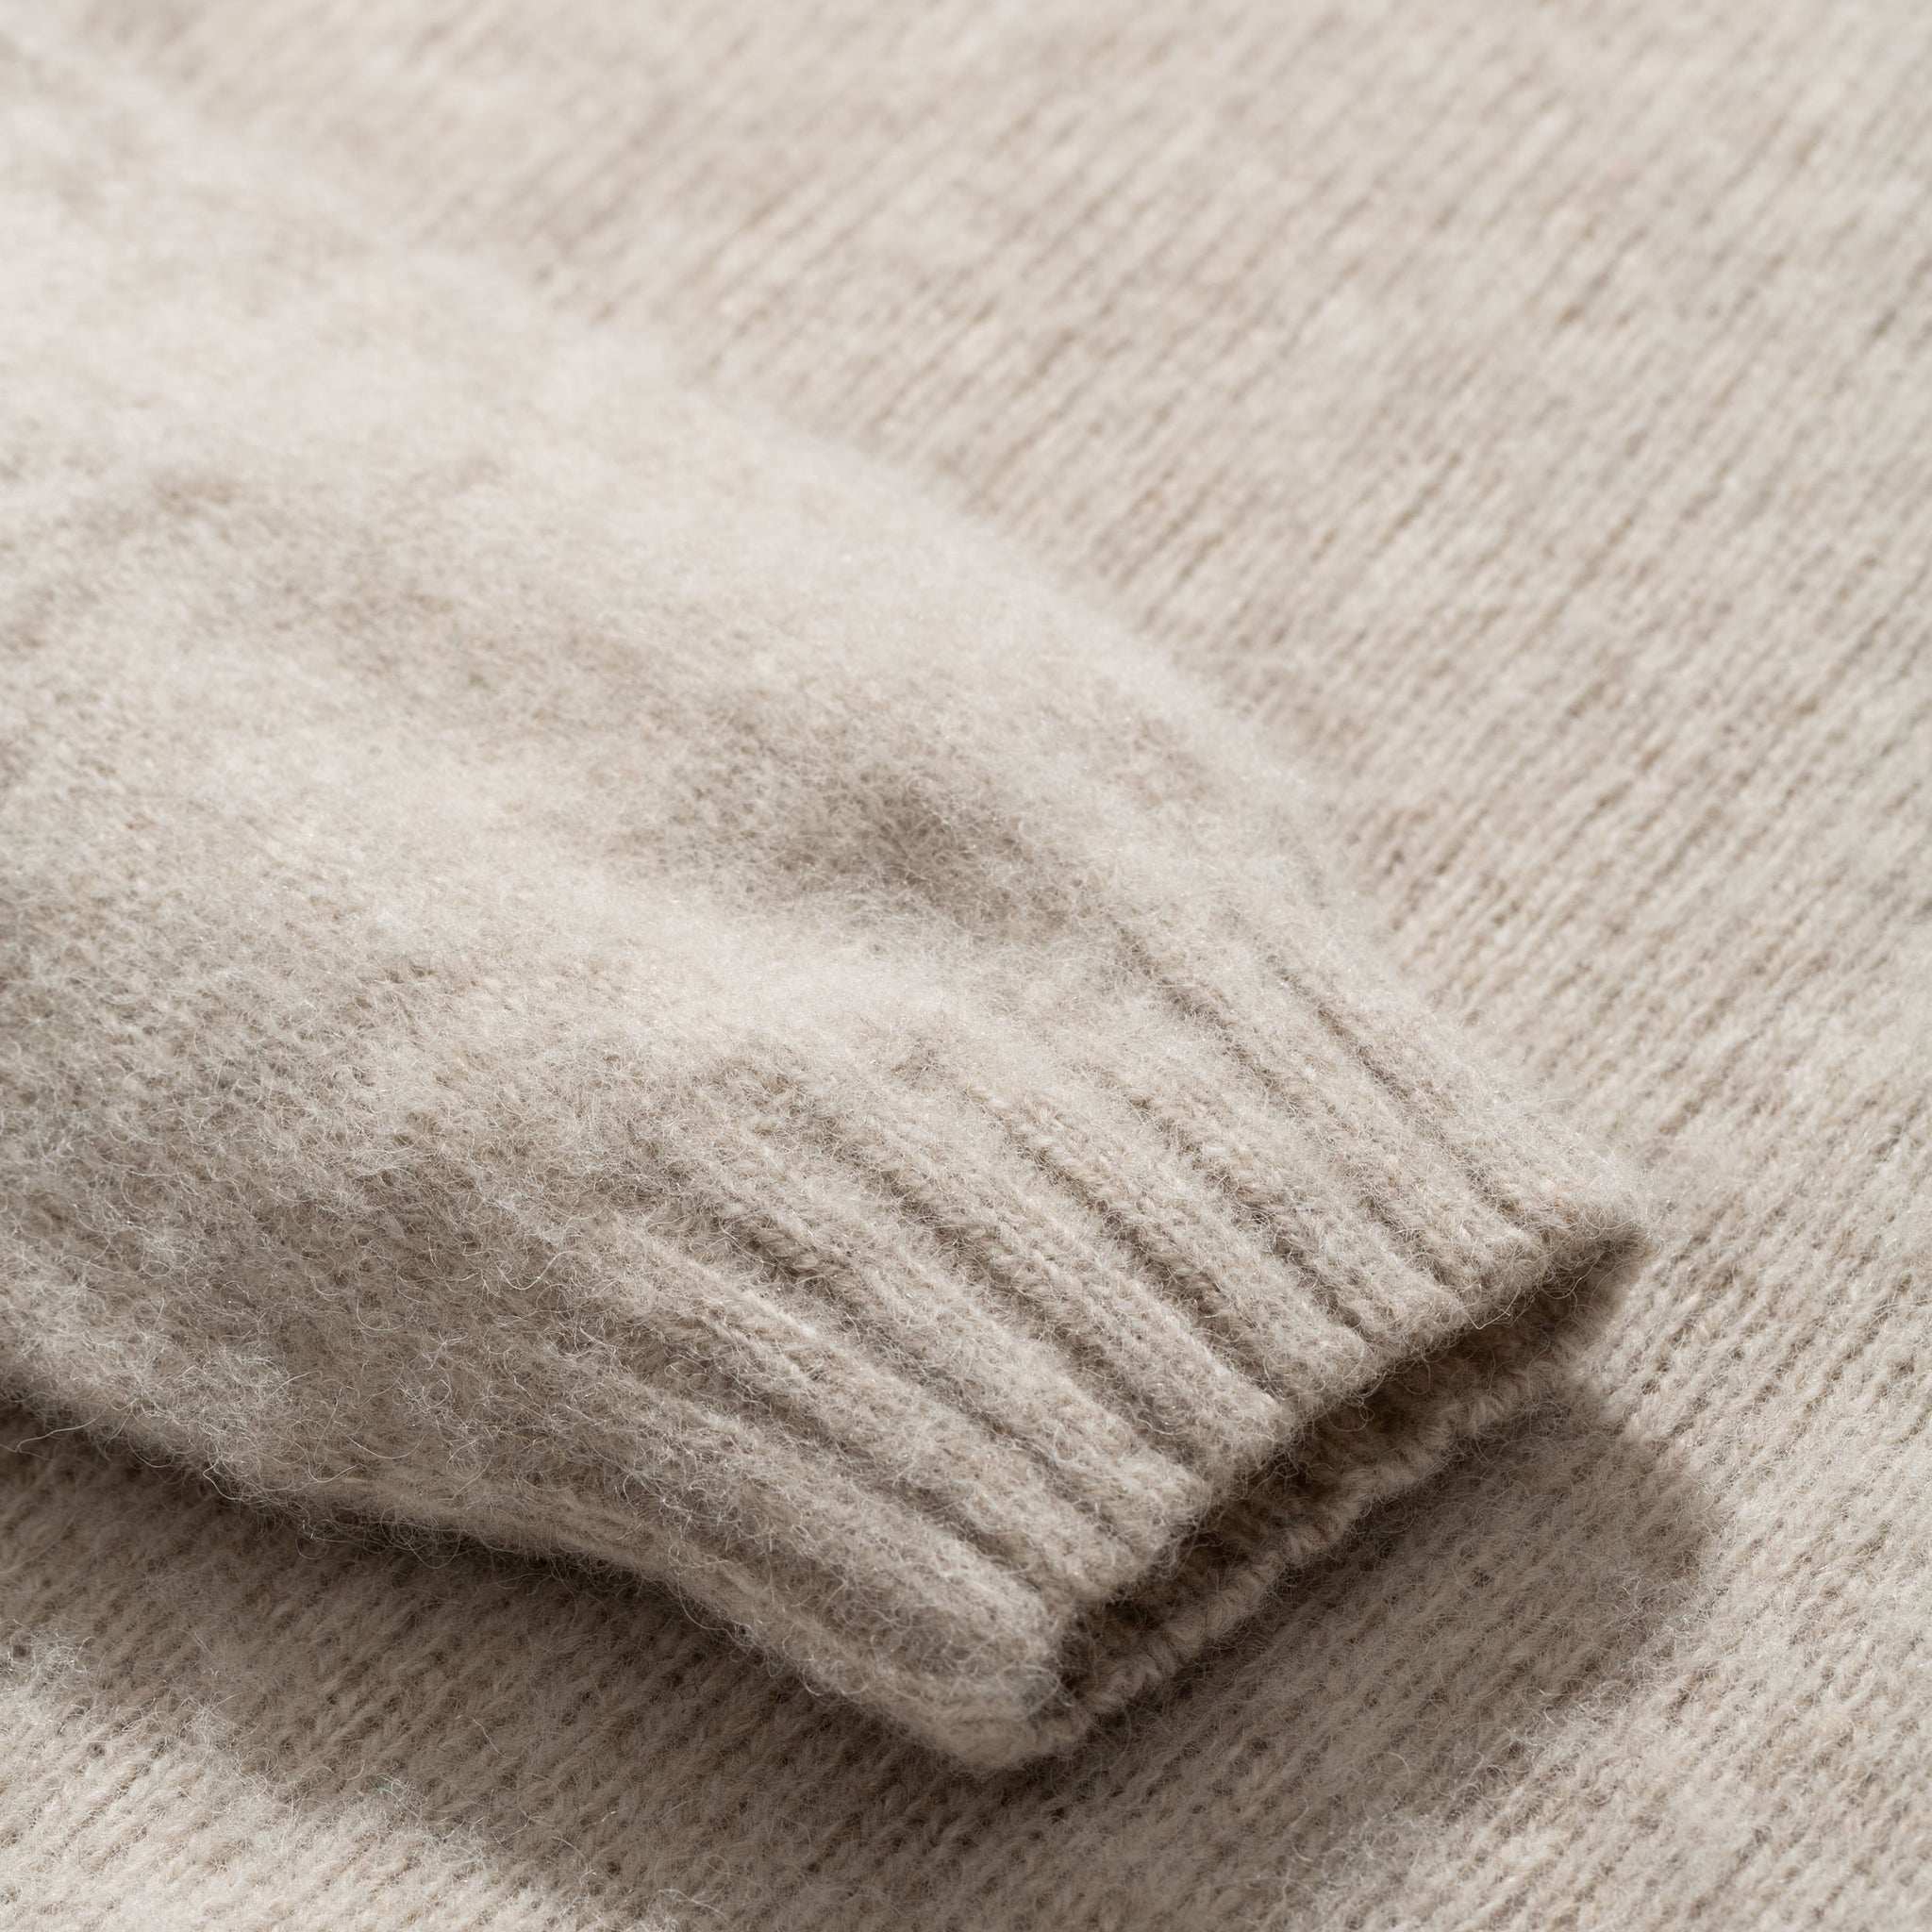 Birnir brushed lambswool oatmeal